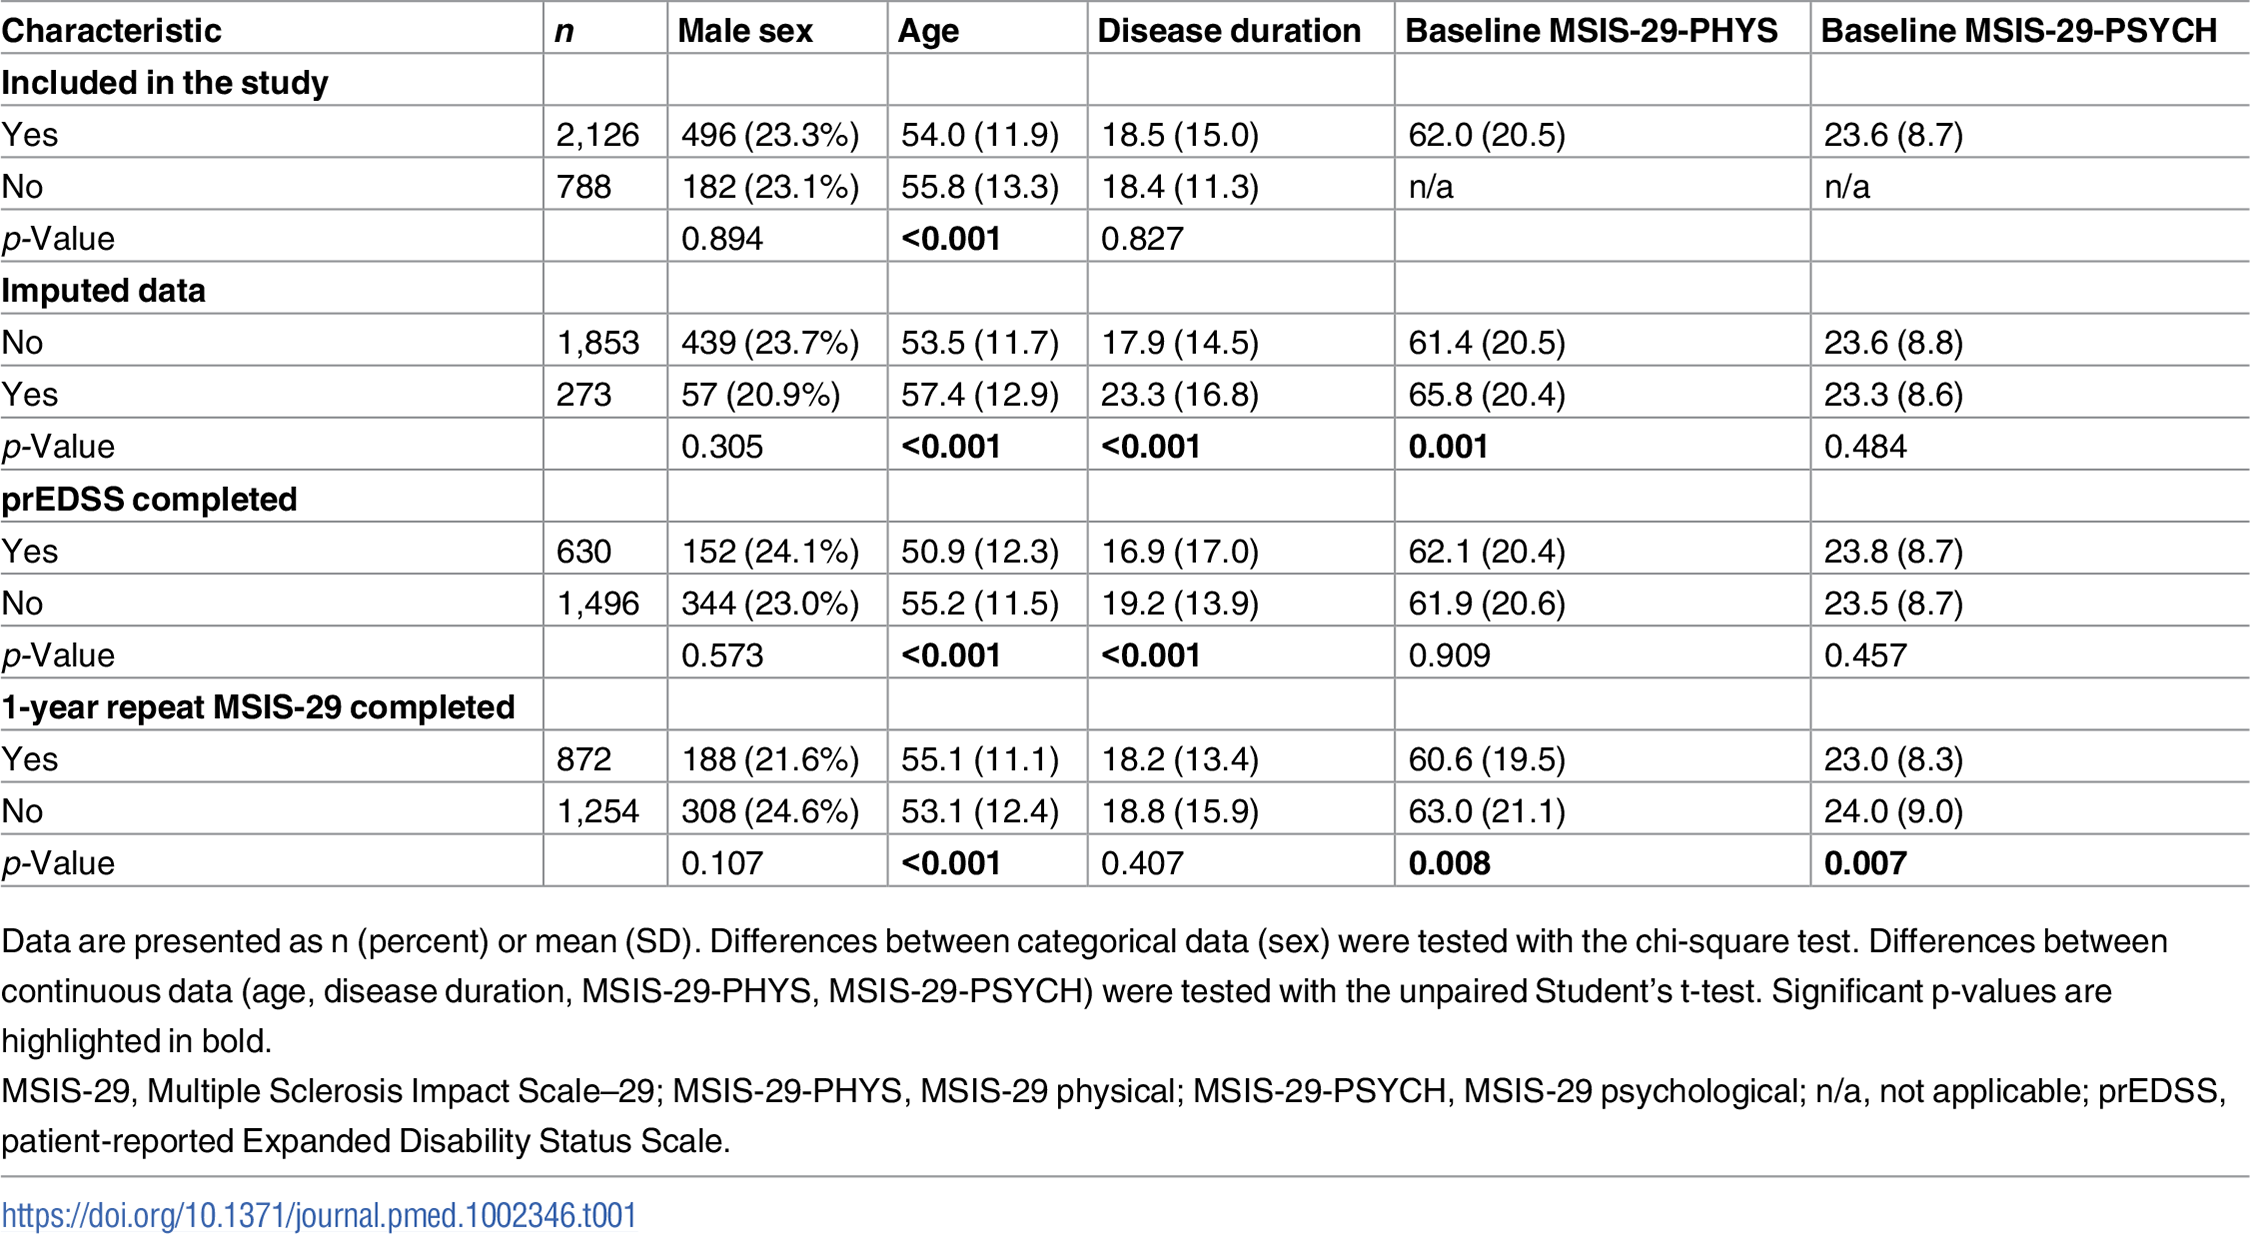 Differences in baseline characteristics between those included and those not included in the study, those with and without imputed data, those with and without prEDSS data, and those with and without longitudinal MSIS-29 data.